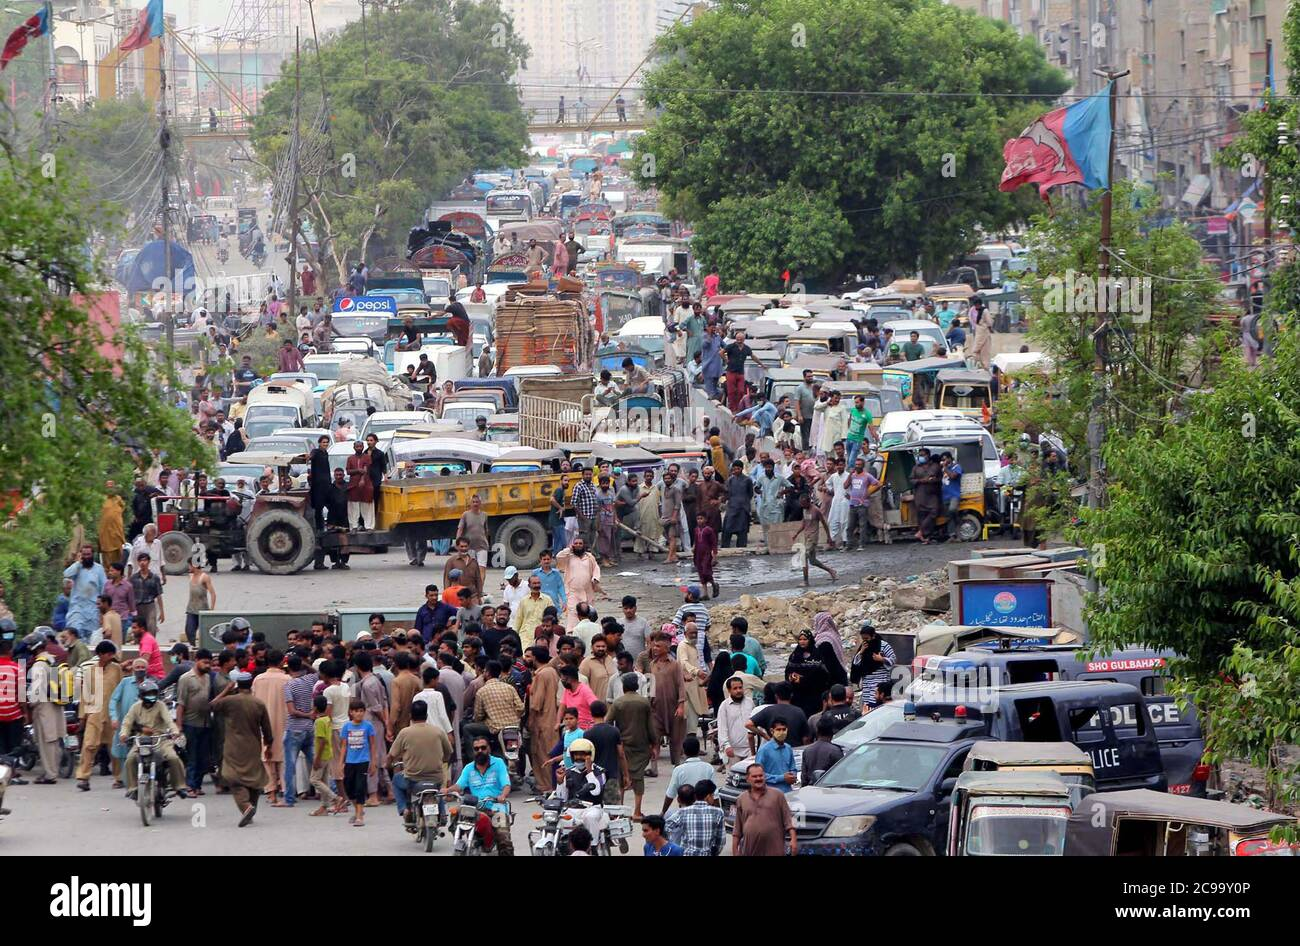 Page 2 Nazimabad High Resolution Stock Photography And Images Alamy